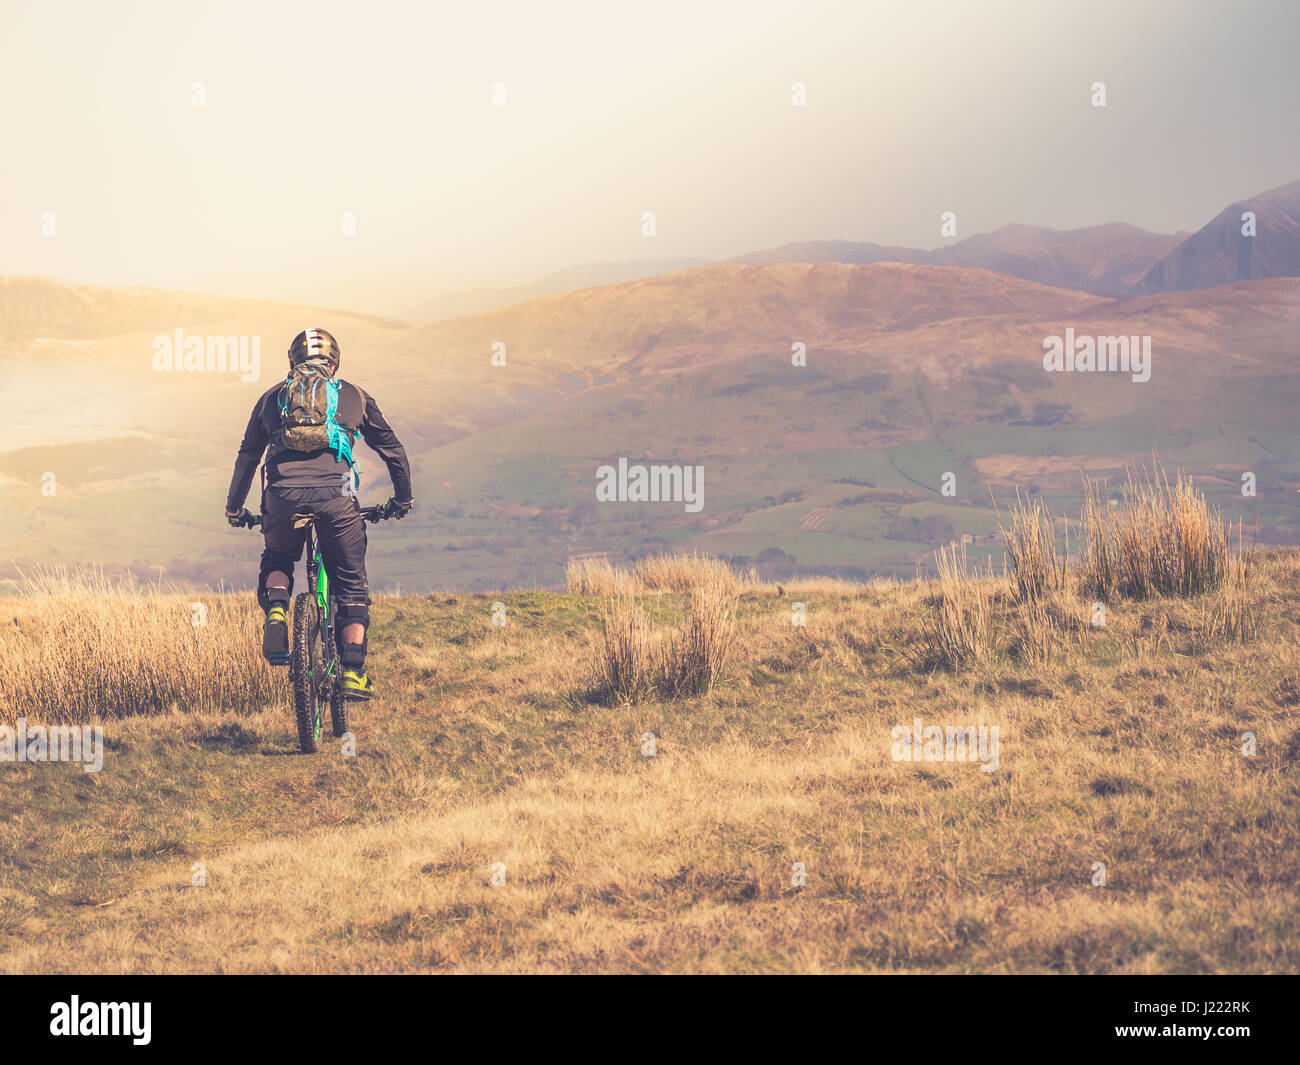 a-mountain-biker-rides-along-top-of-dent-fell-in-the-lake-district-J222RK.jpg